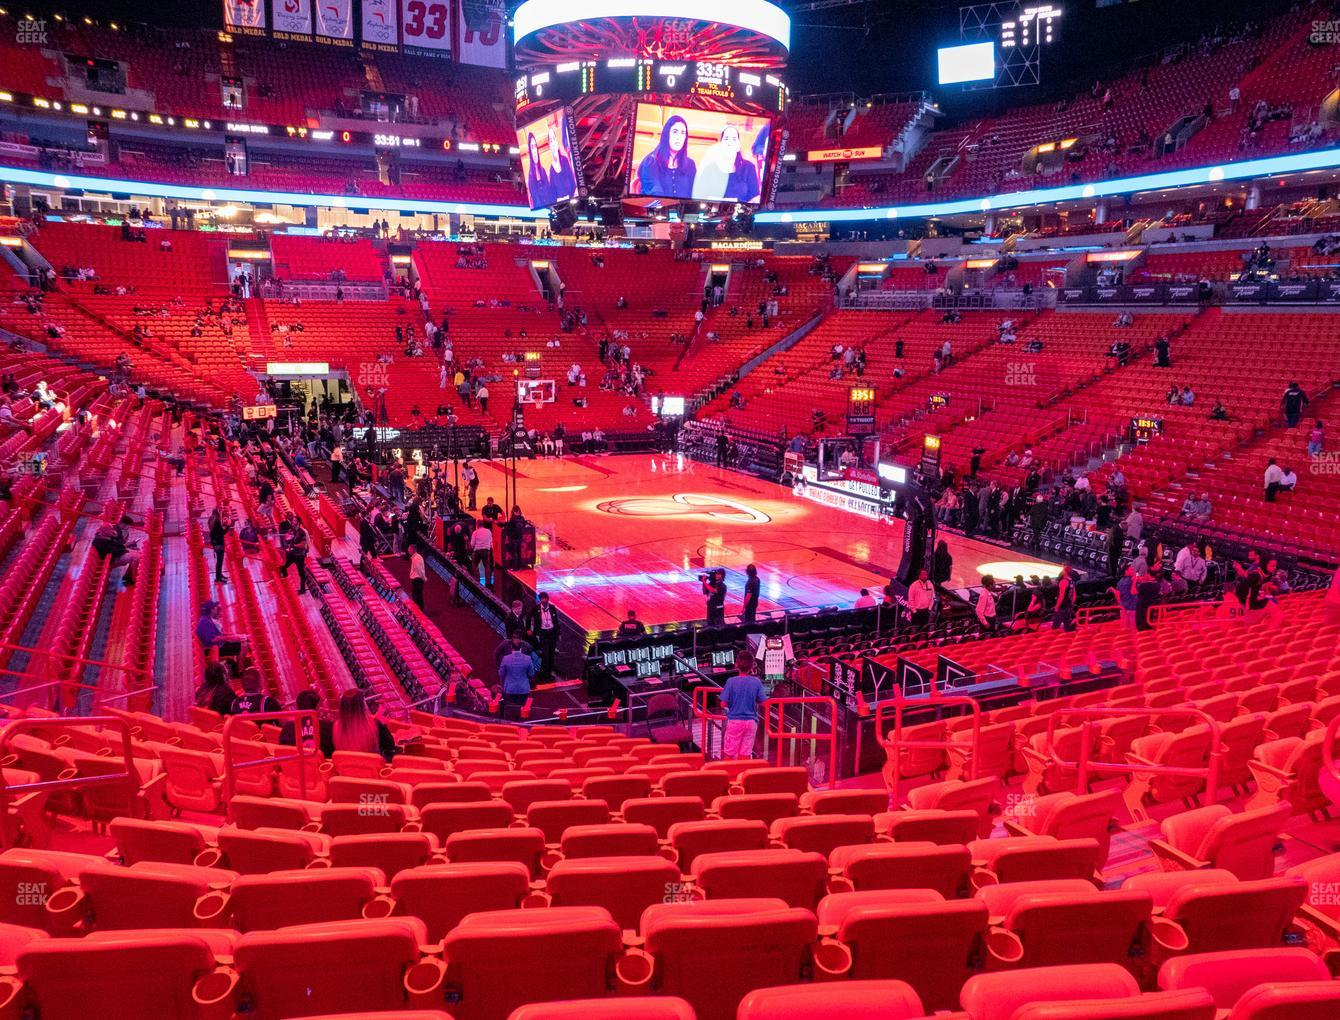 American Airlines Arena Section 114